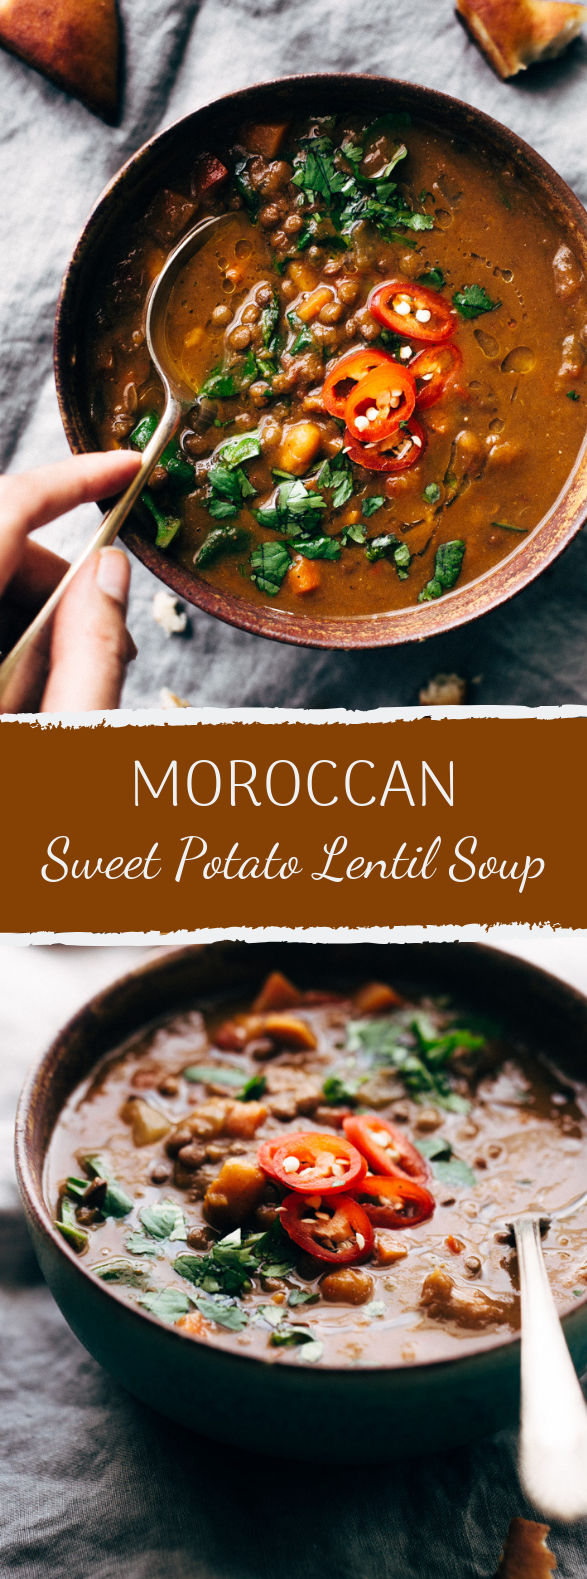 Photo of WINTER DETOX MOROCCAN SWEET POTATO LENTIL SOUP (SLOW COOKER) #vegetarian #comfortfood